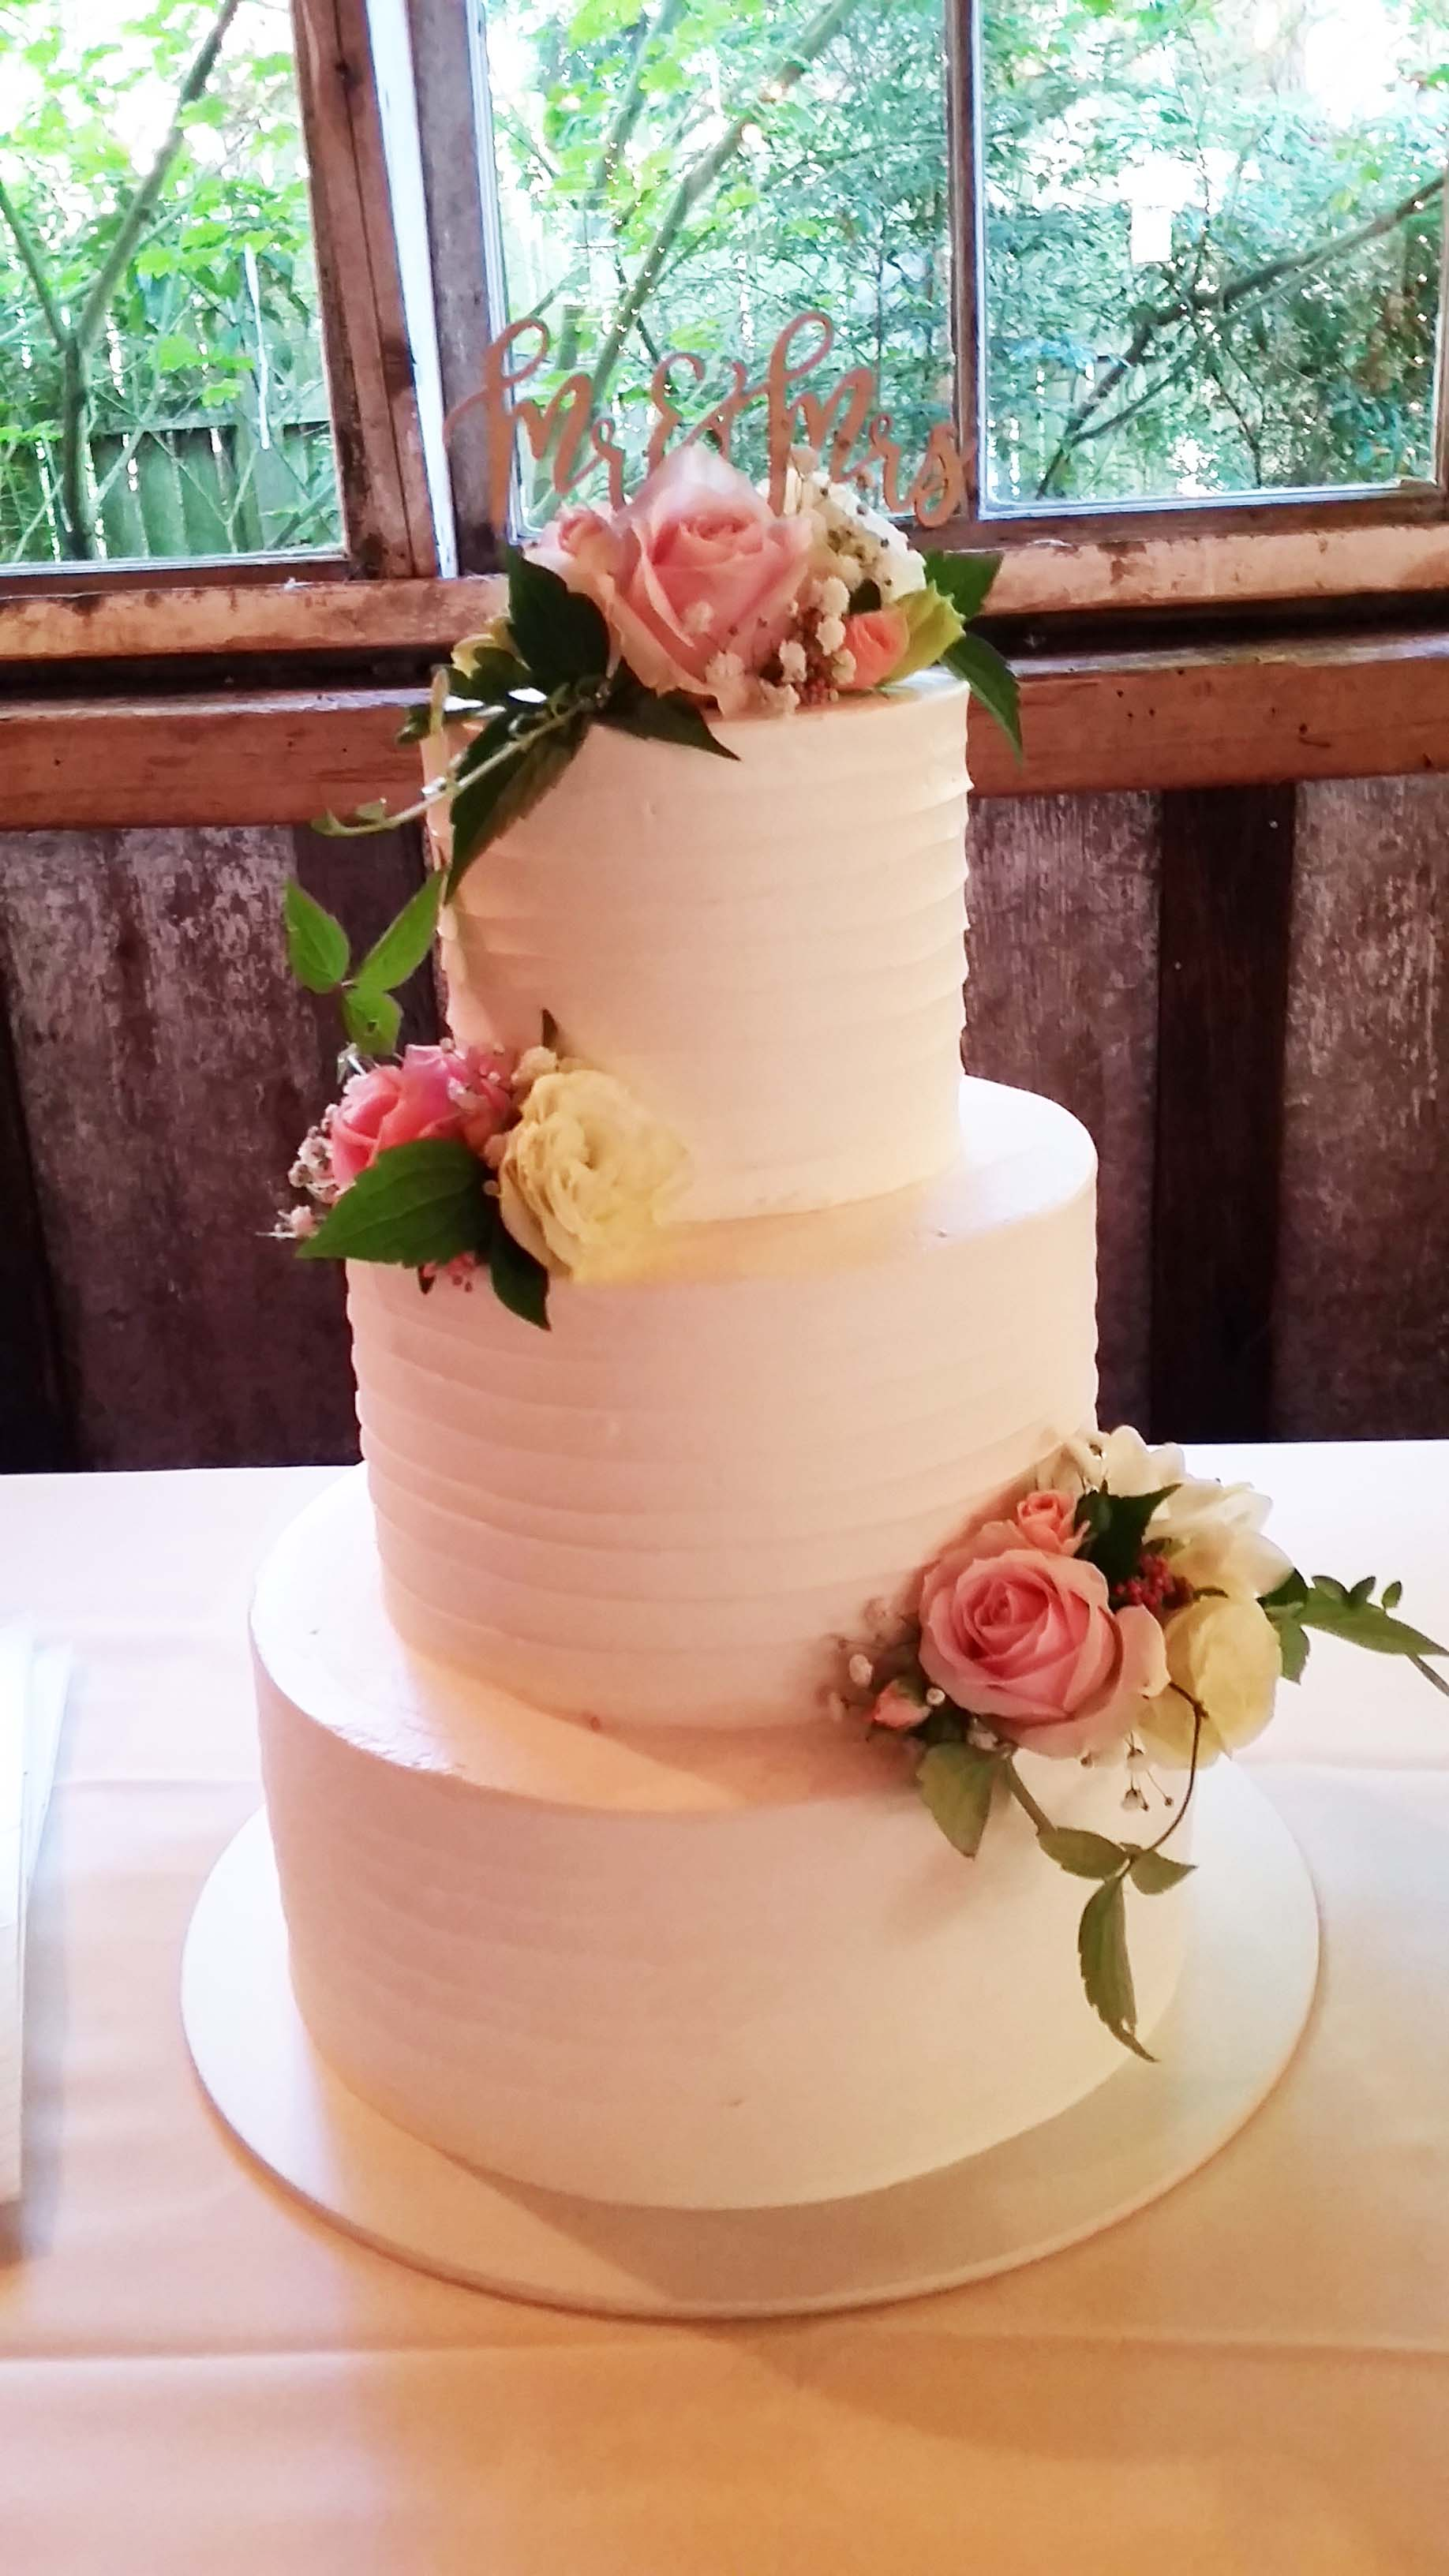 CA0172-Weddinc Cake with Soft Pink and White Flower Accents